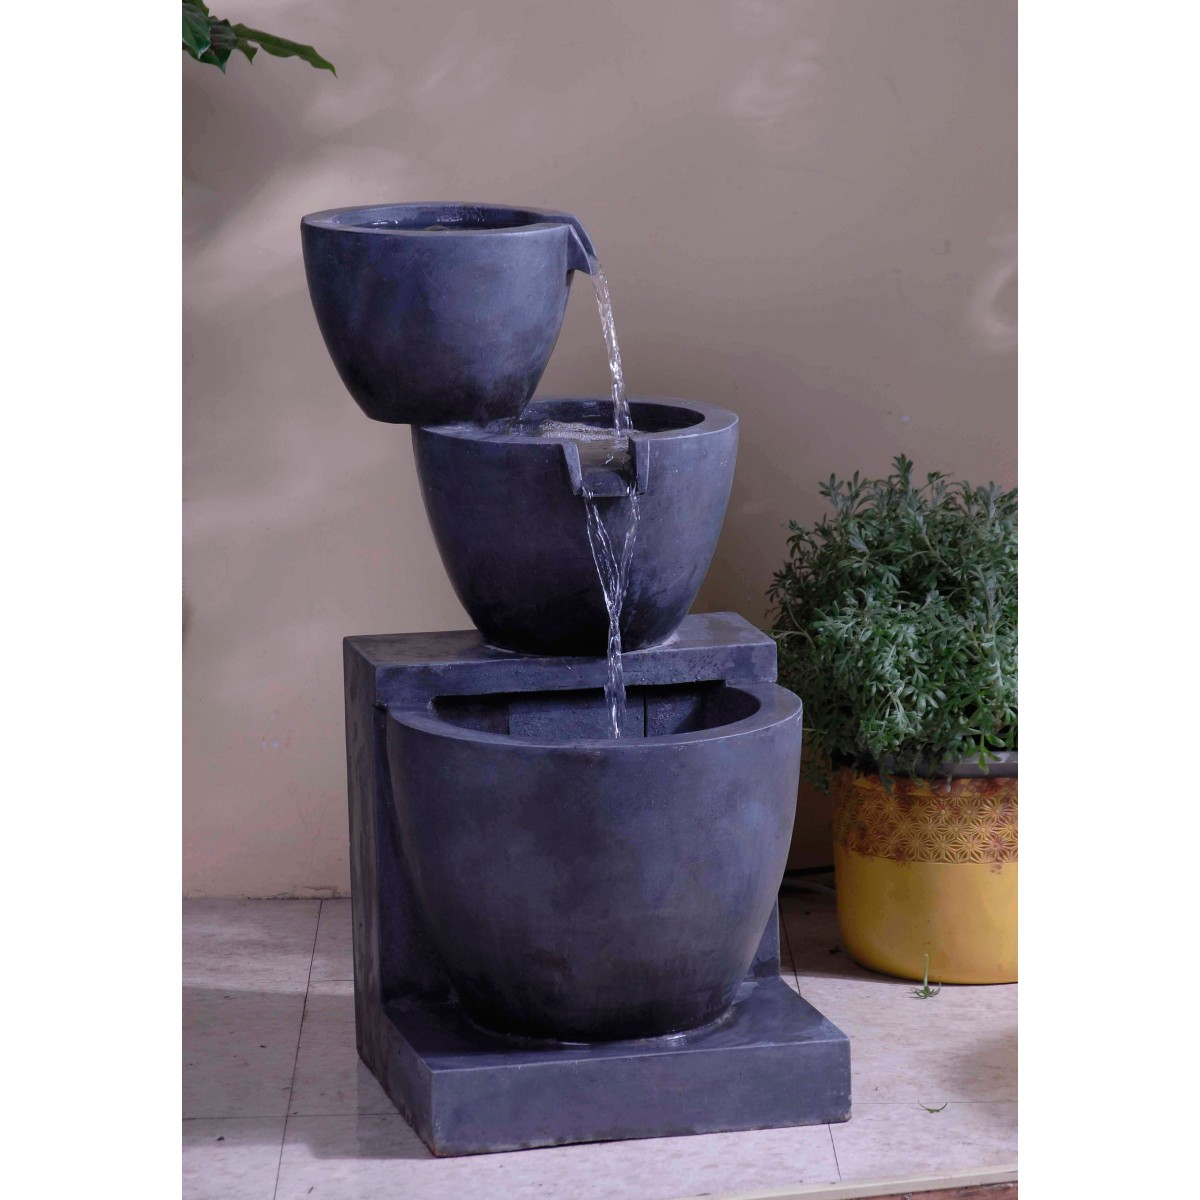 Modern water fountains indoor